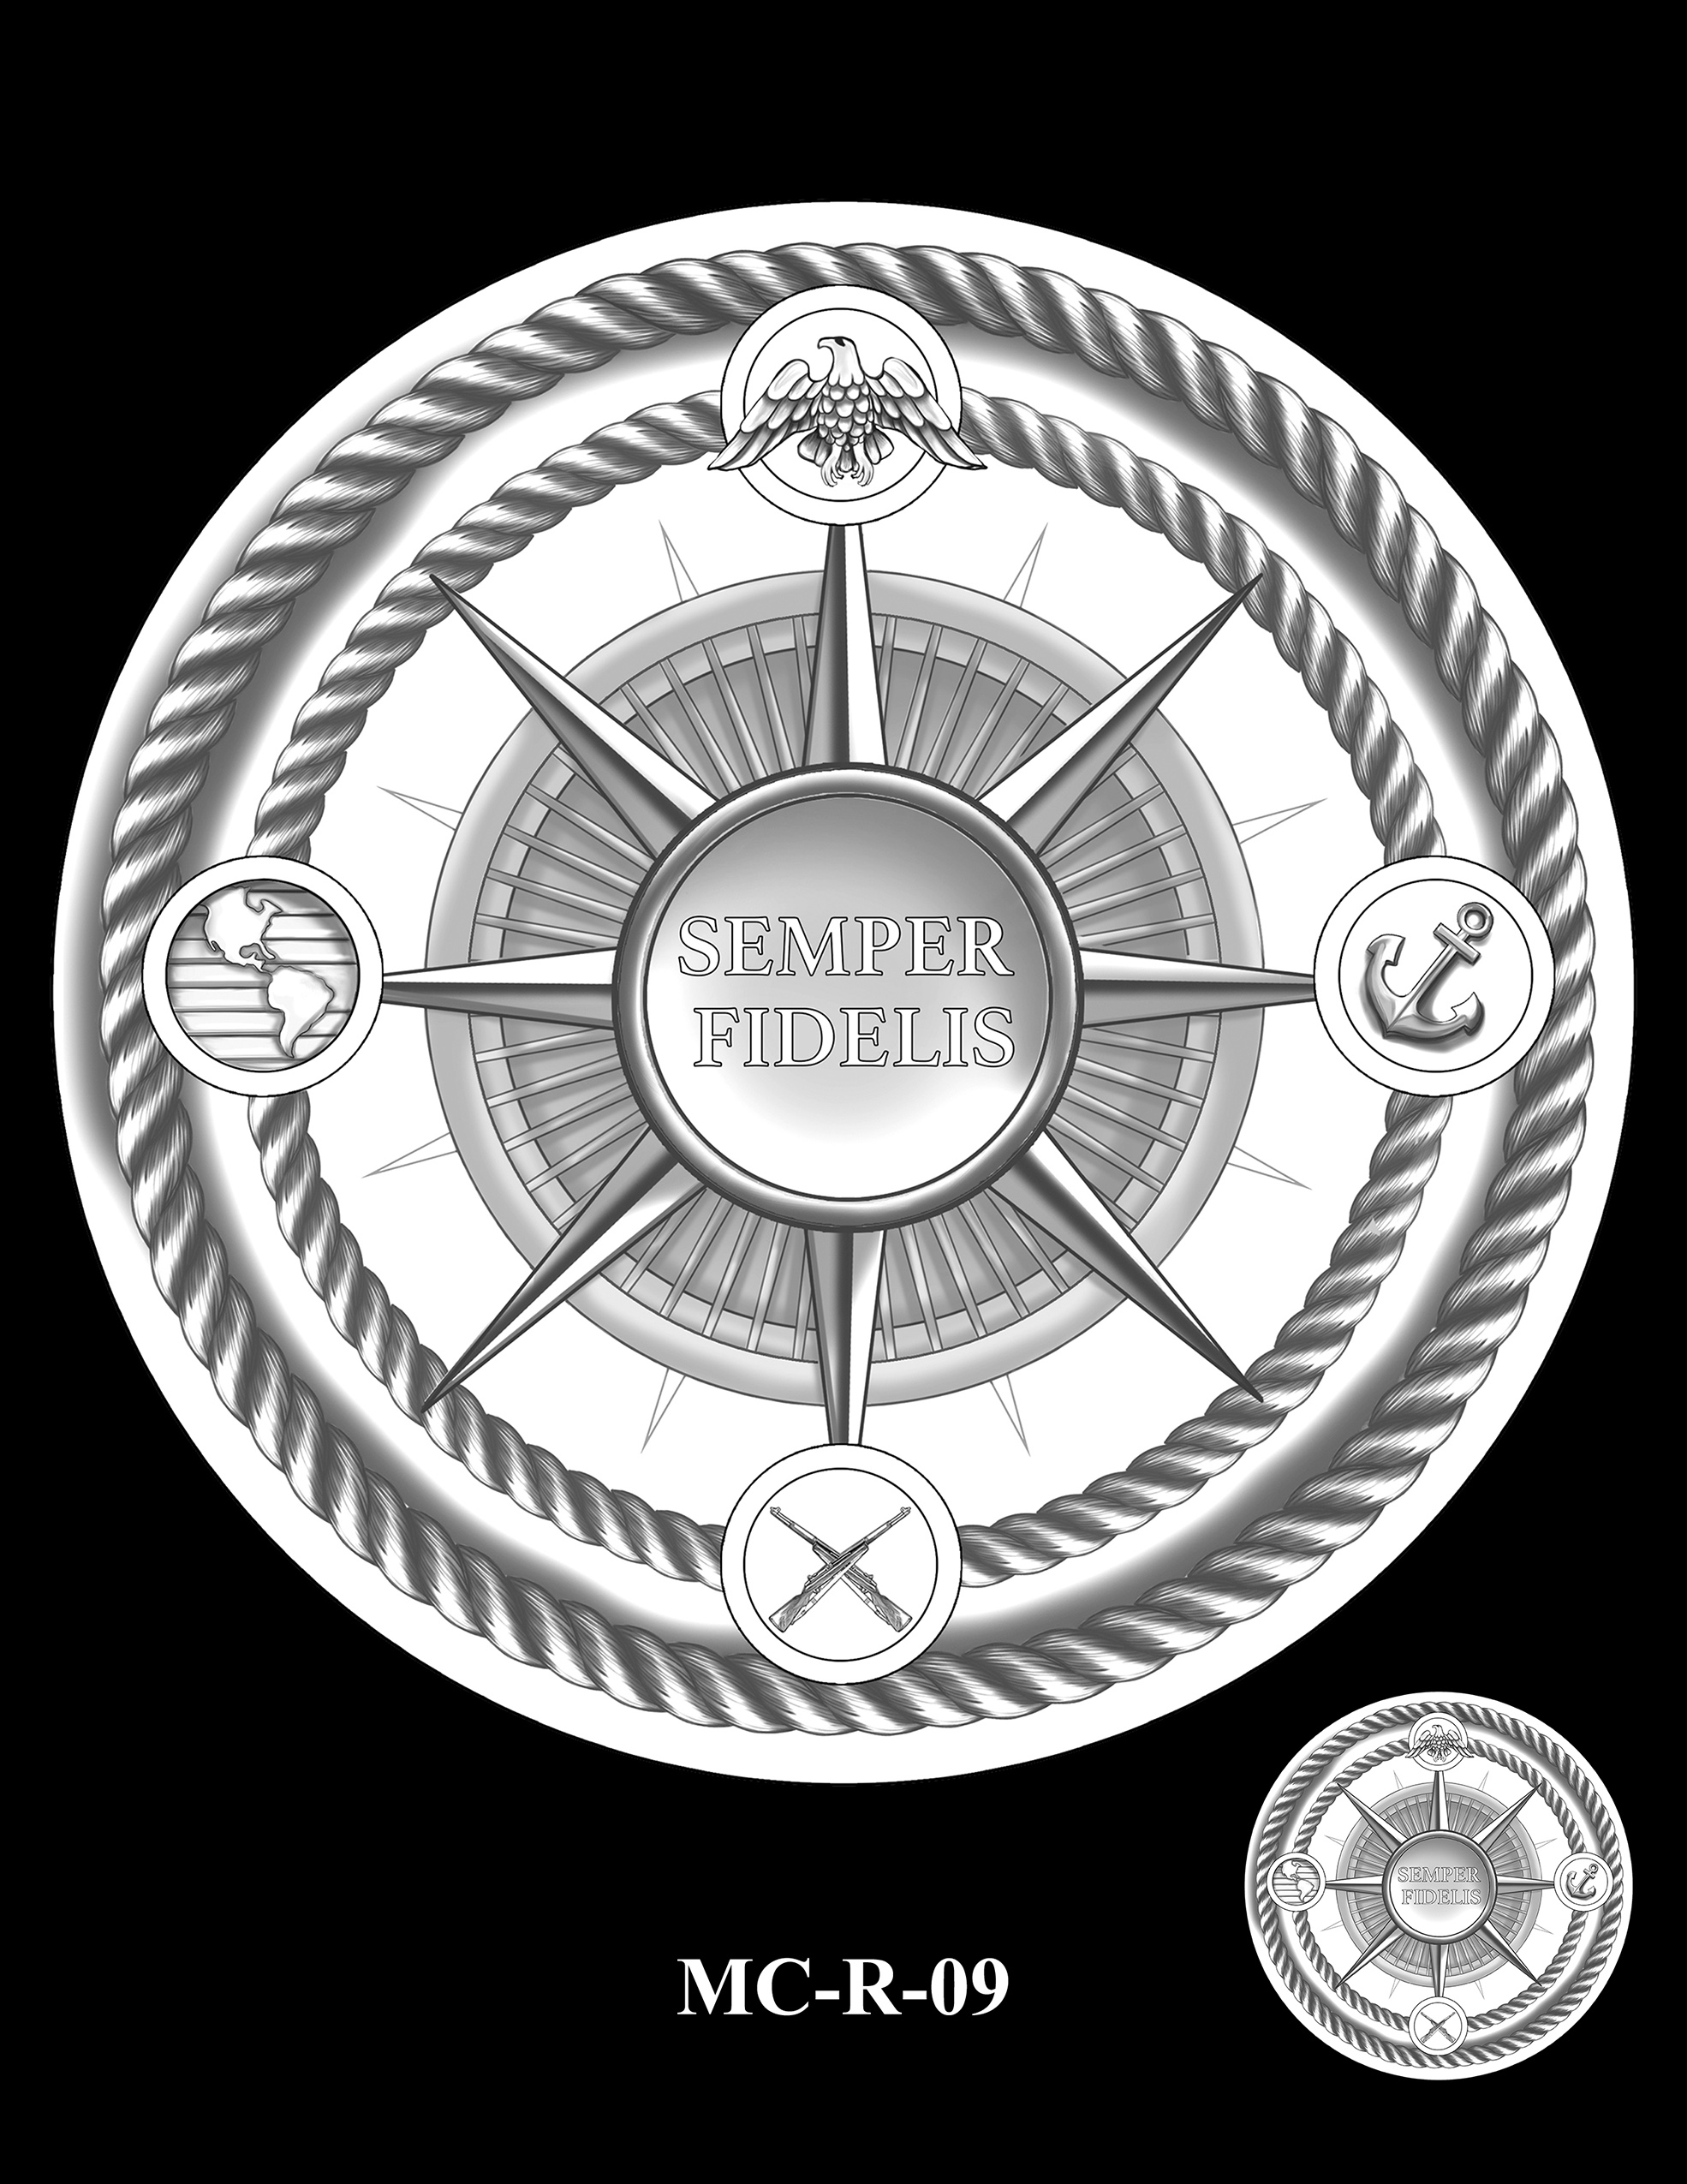 MC-R-09 -- United States Marine Corps Silver Medal